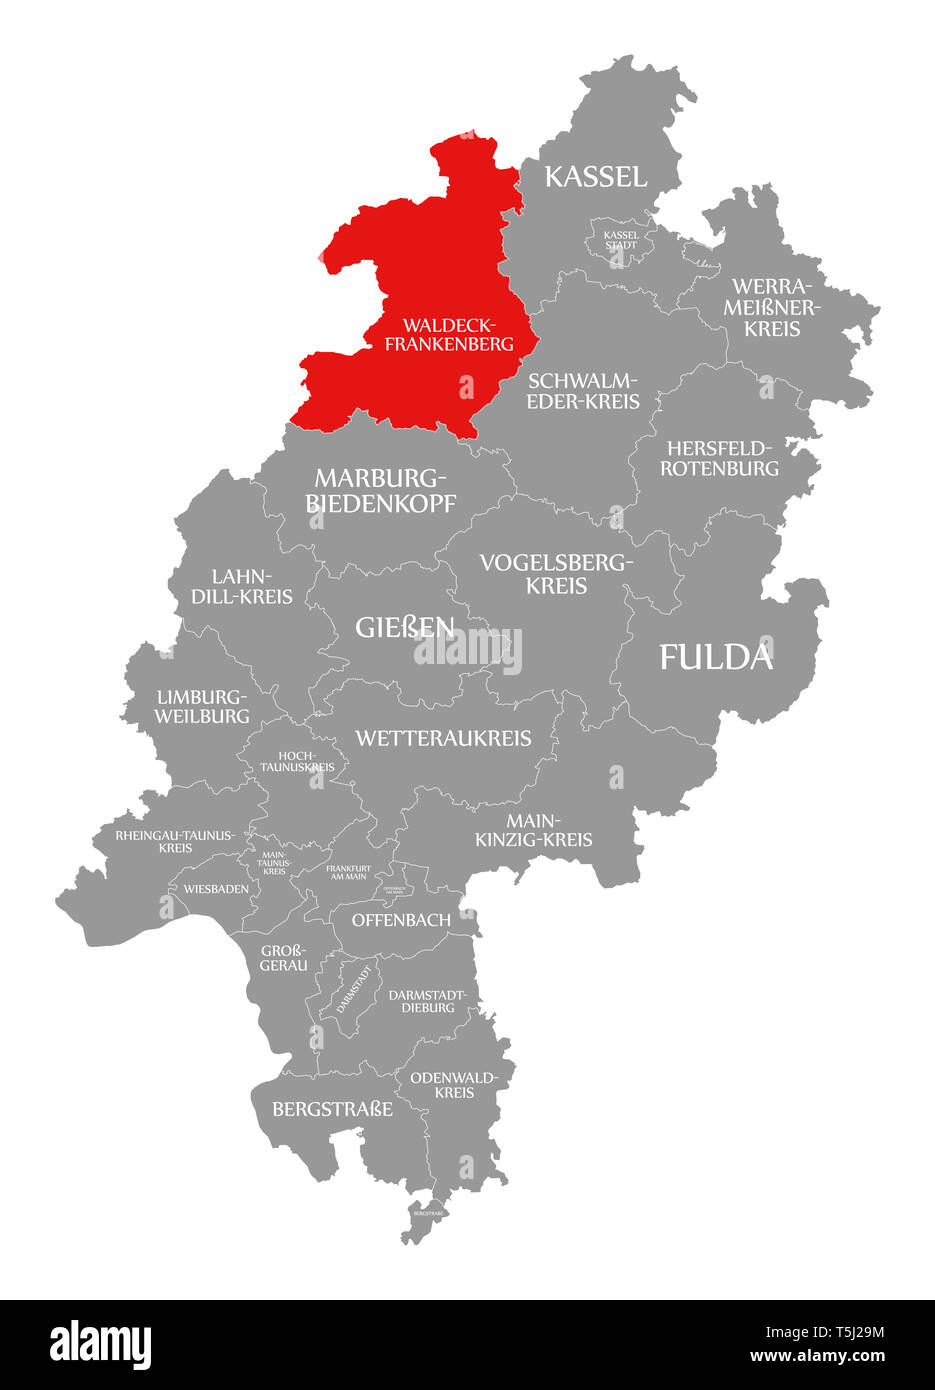 Waldeck-Frankenberg county red highlighted in map of Hessen Germany - Stock Image